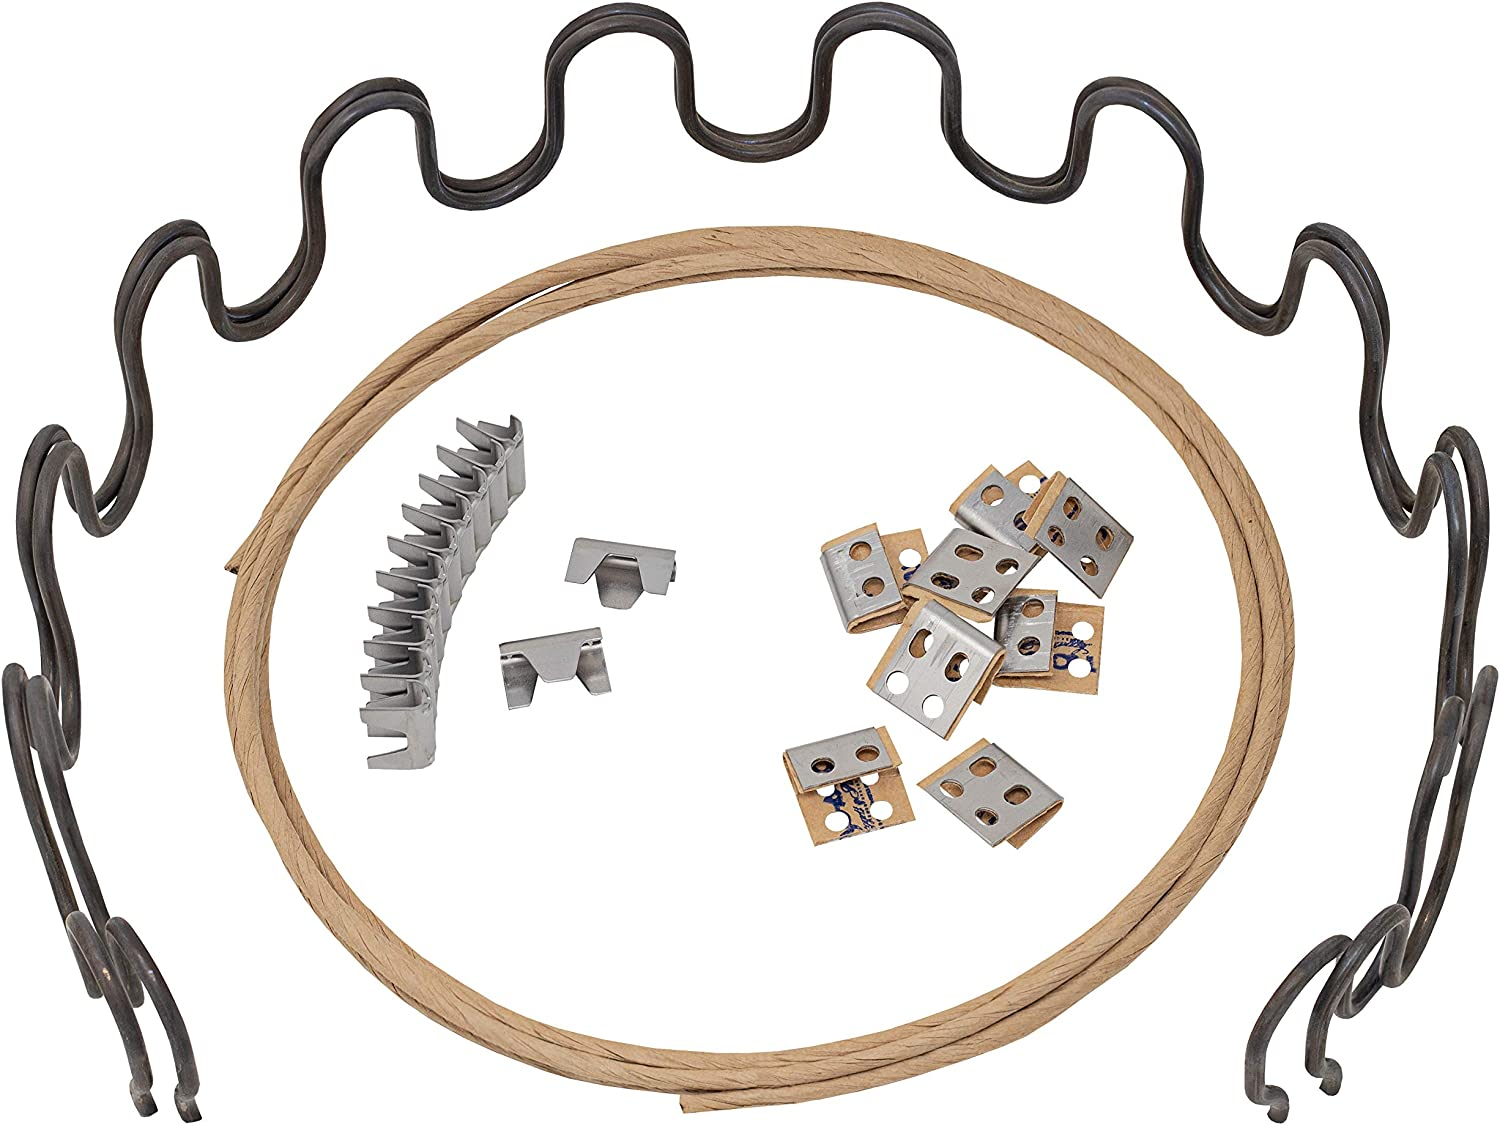 """House2Home 18"""" Sofa Upholstery Spring Replacement Kit- 2pk Springs, Clips, Wire for Furniture Chair Couch and Recliner Repair Includes Instructions"""